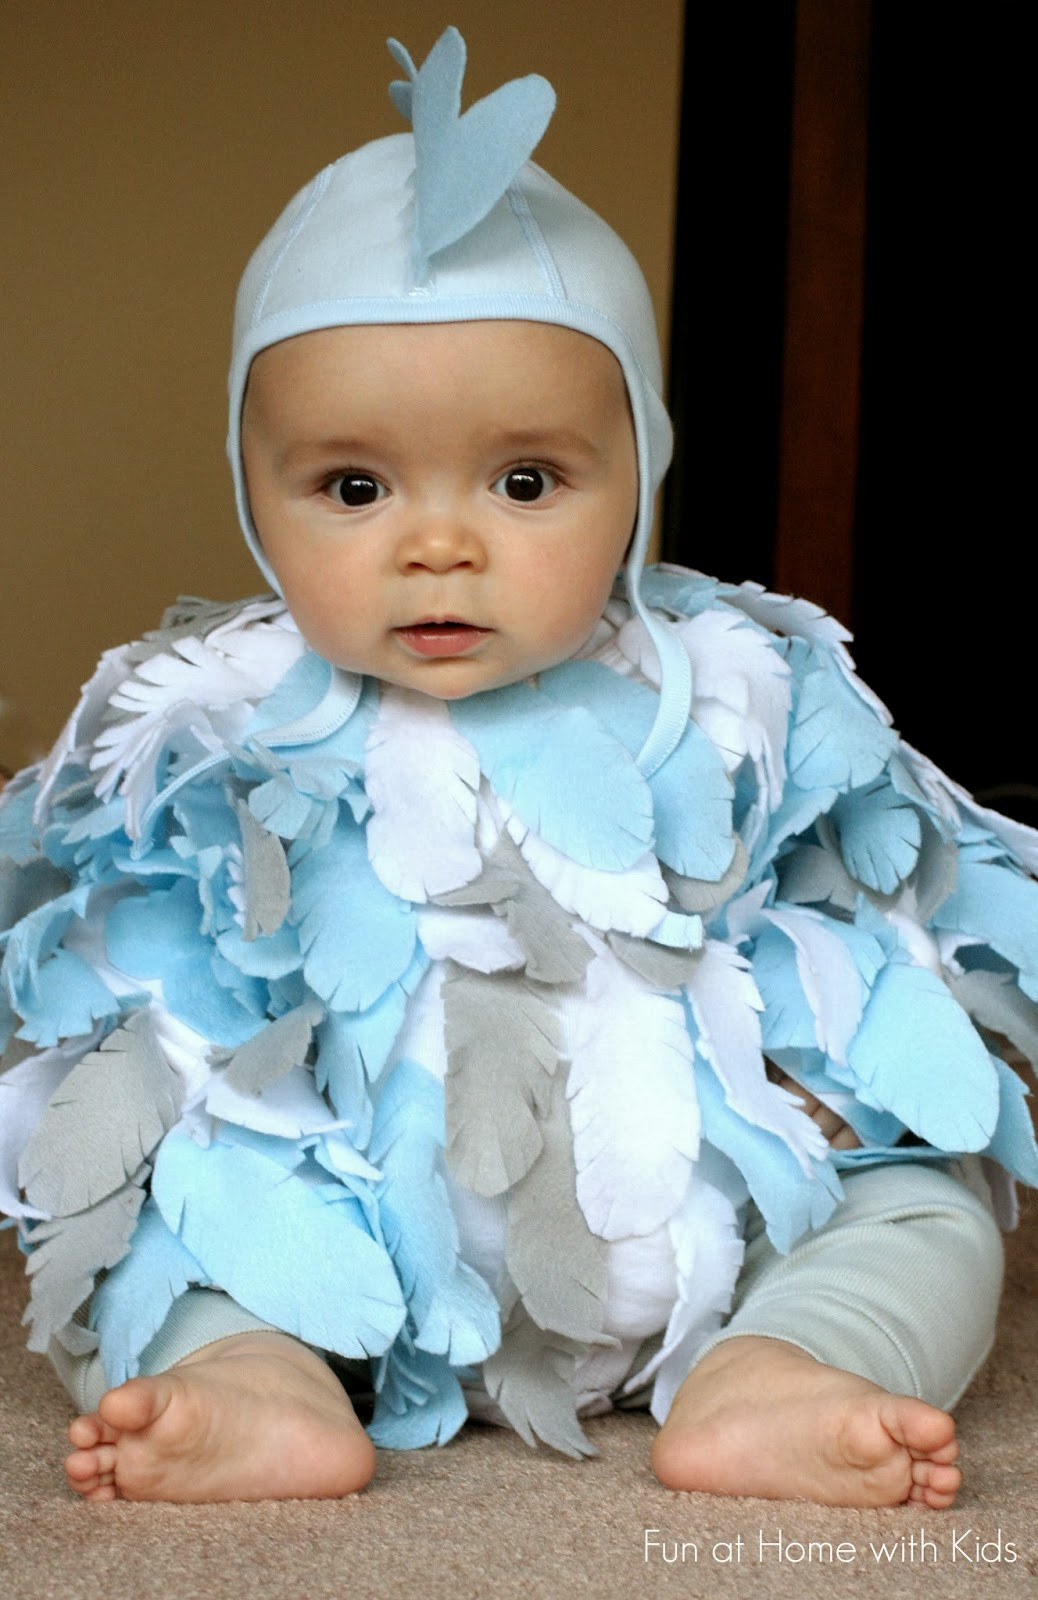 Best ideas about DIY Infant Costume . Save or Pin DIY No Sew Baby Chicken Halloween Costume Now.